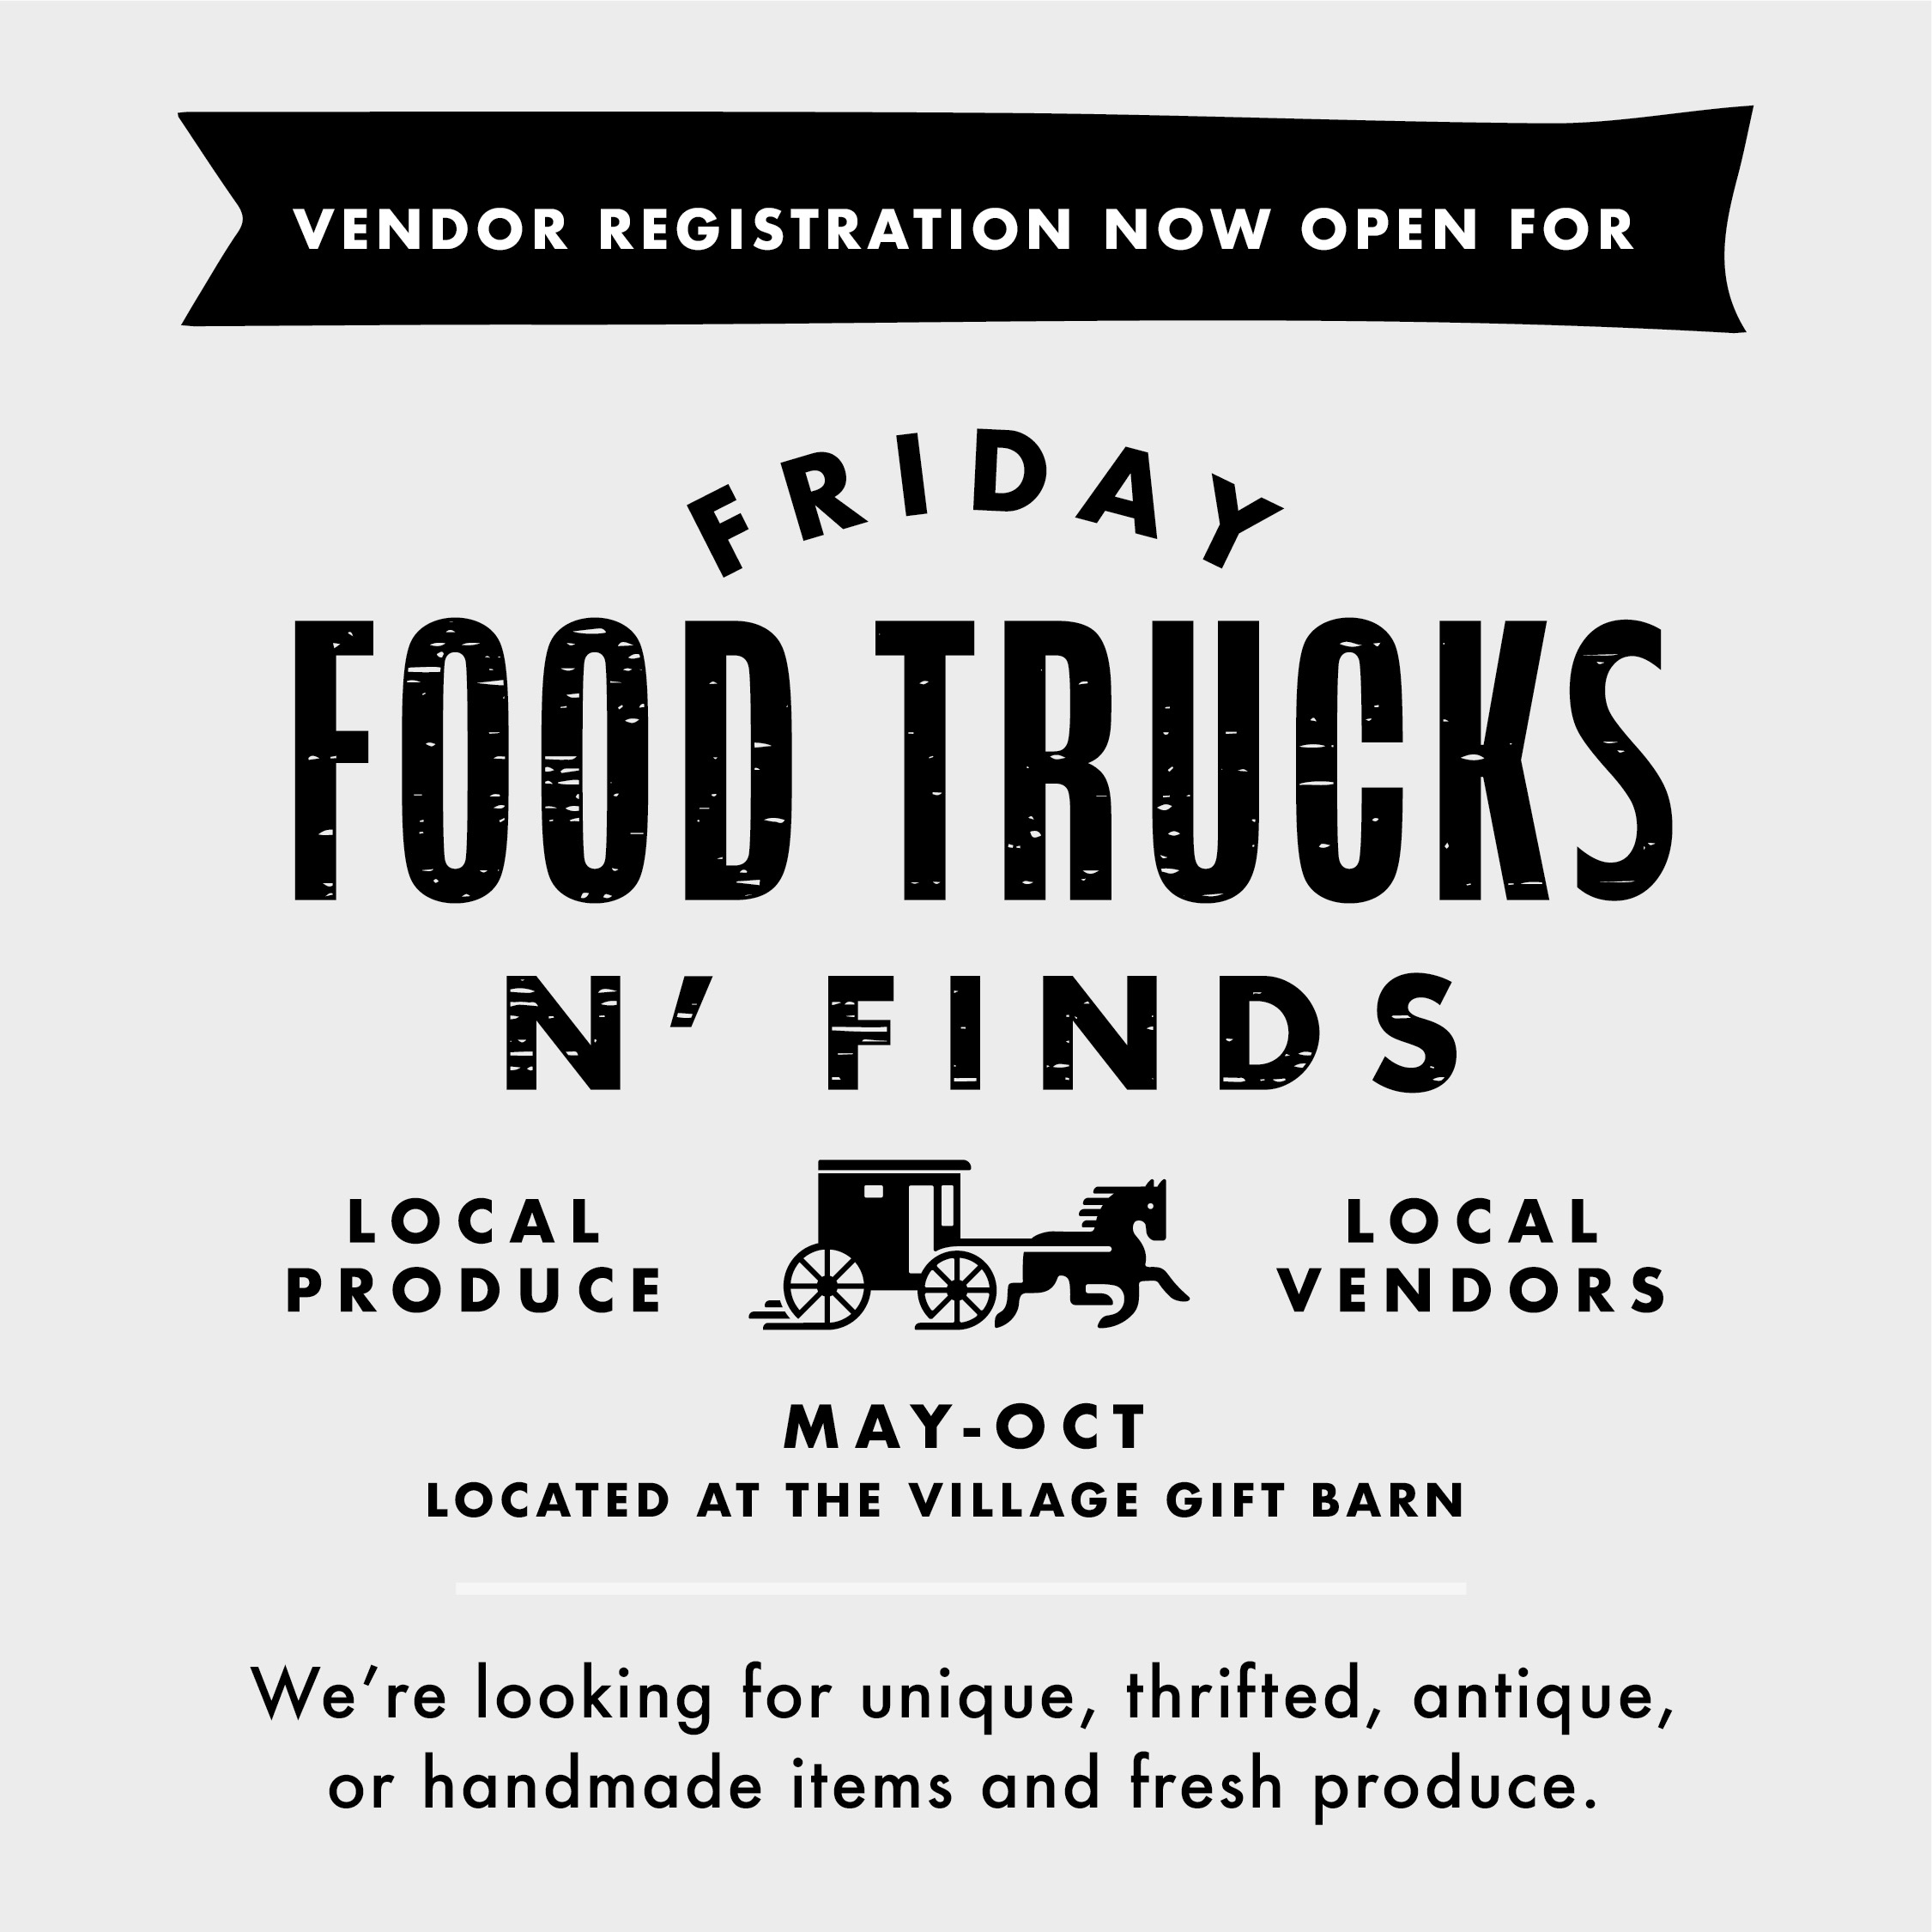 Food Truck Dates- (weather permitting) 11am-7pm:  -May 3 & 17  -June7 & 21  -July 5 & 19  -August 2 & 16  -September 20  -October 4 &18  Vendor Fair Dates - (weather permitting) - Time 11am-??  -June 21  -July 19  -August 16  -September 20  -October 18    **To apply for Food Truck space or Vendor space please email Brittany@oldeberlinvillage.com